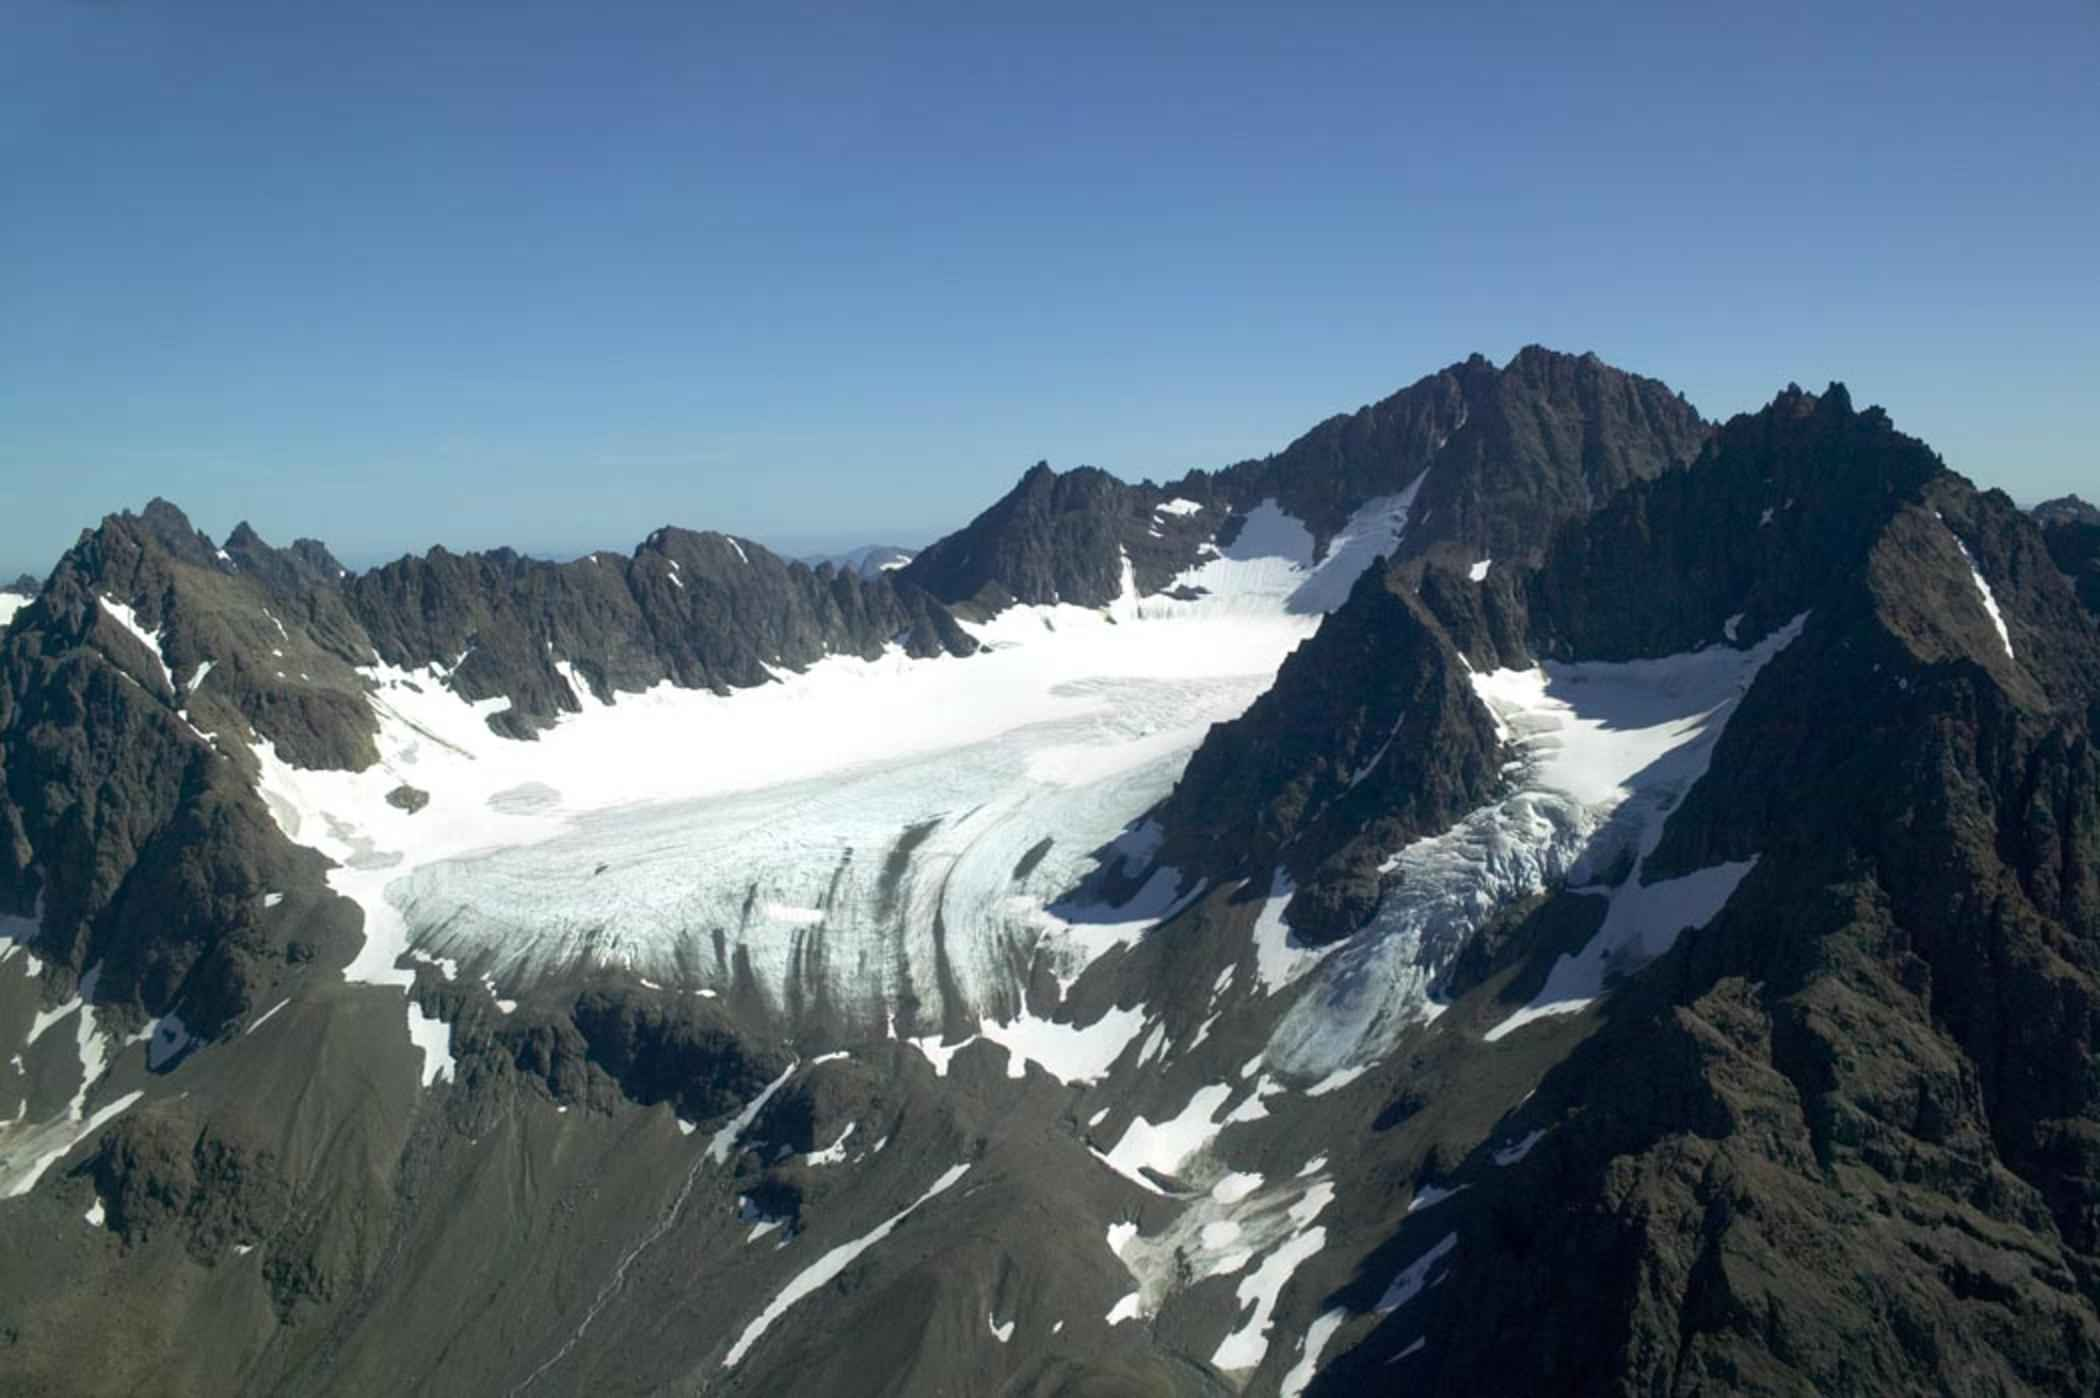 On Rising Temperatures and Glacier Response | Matt Chernos